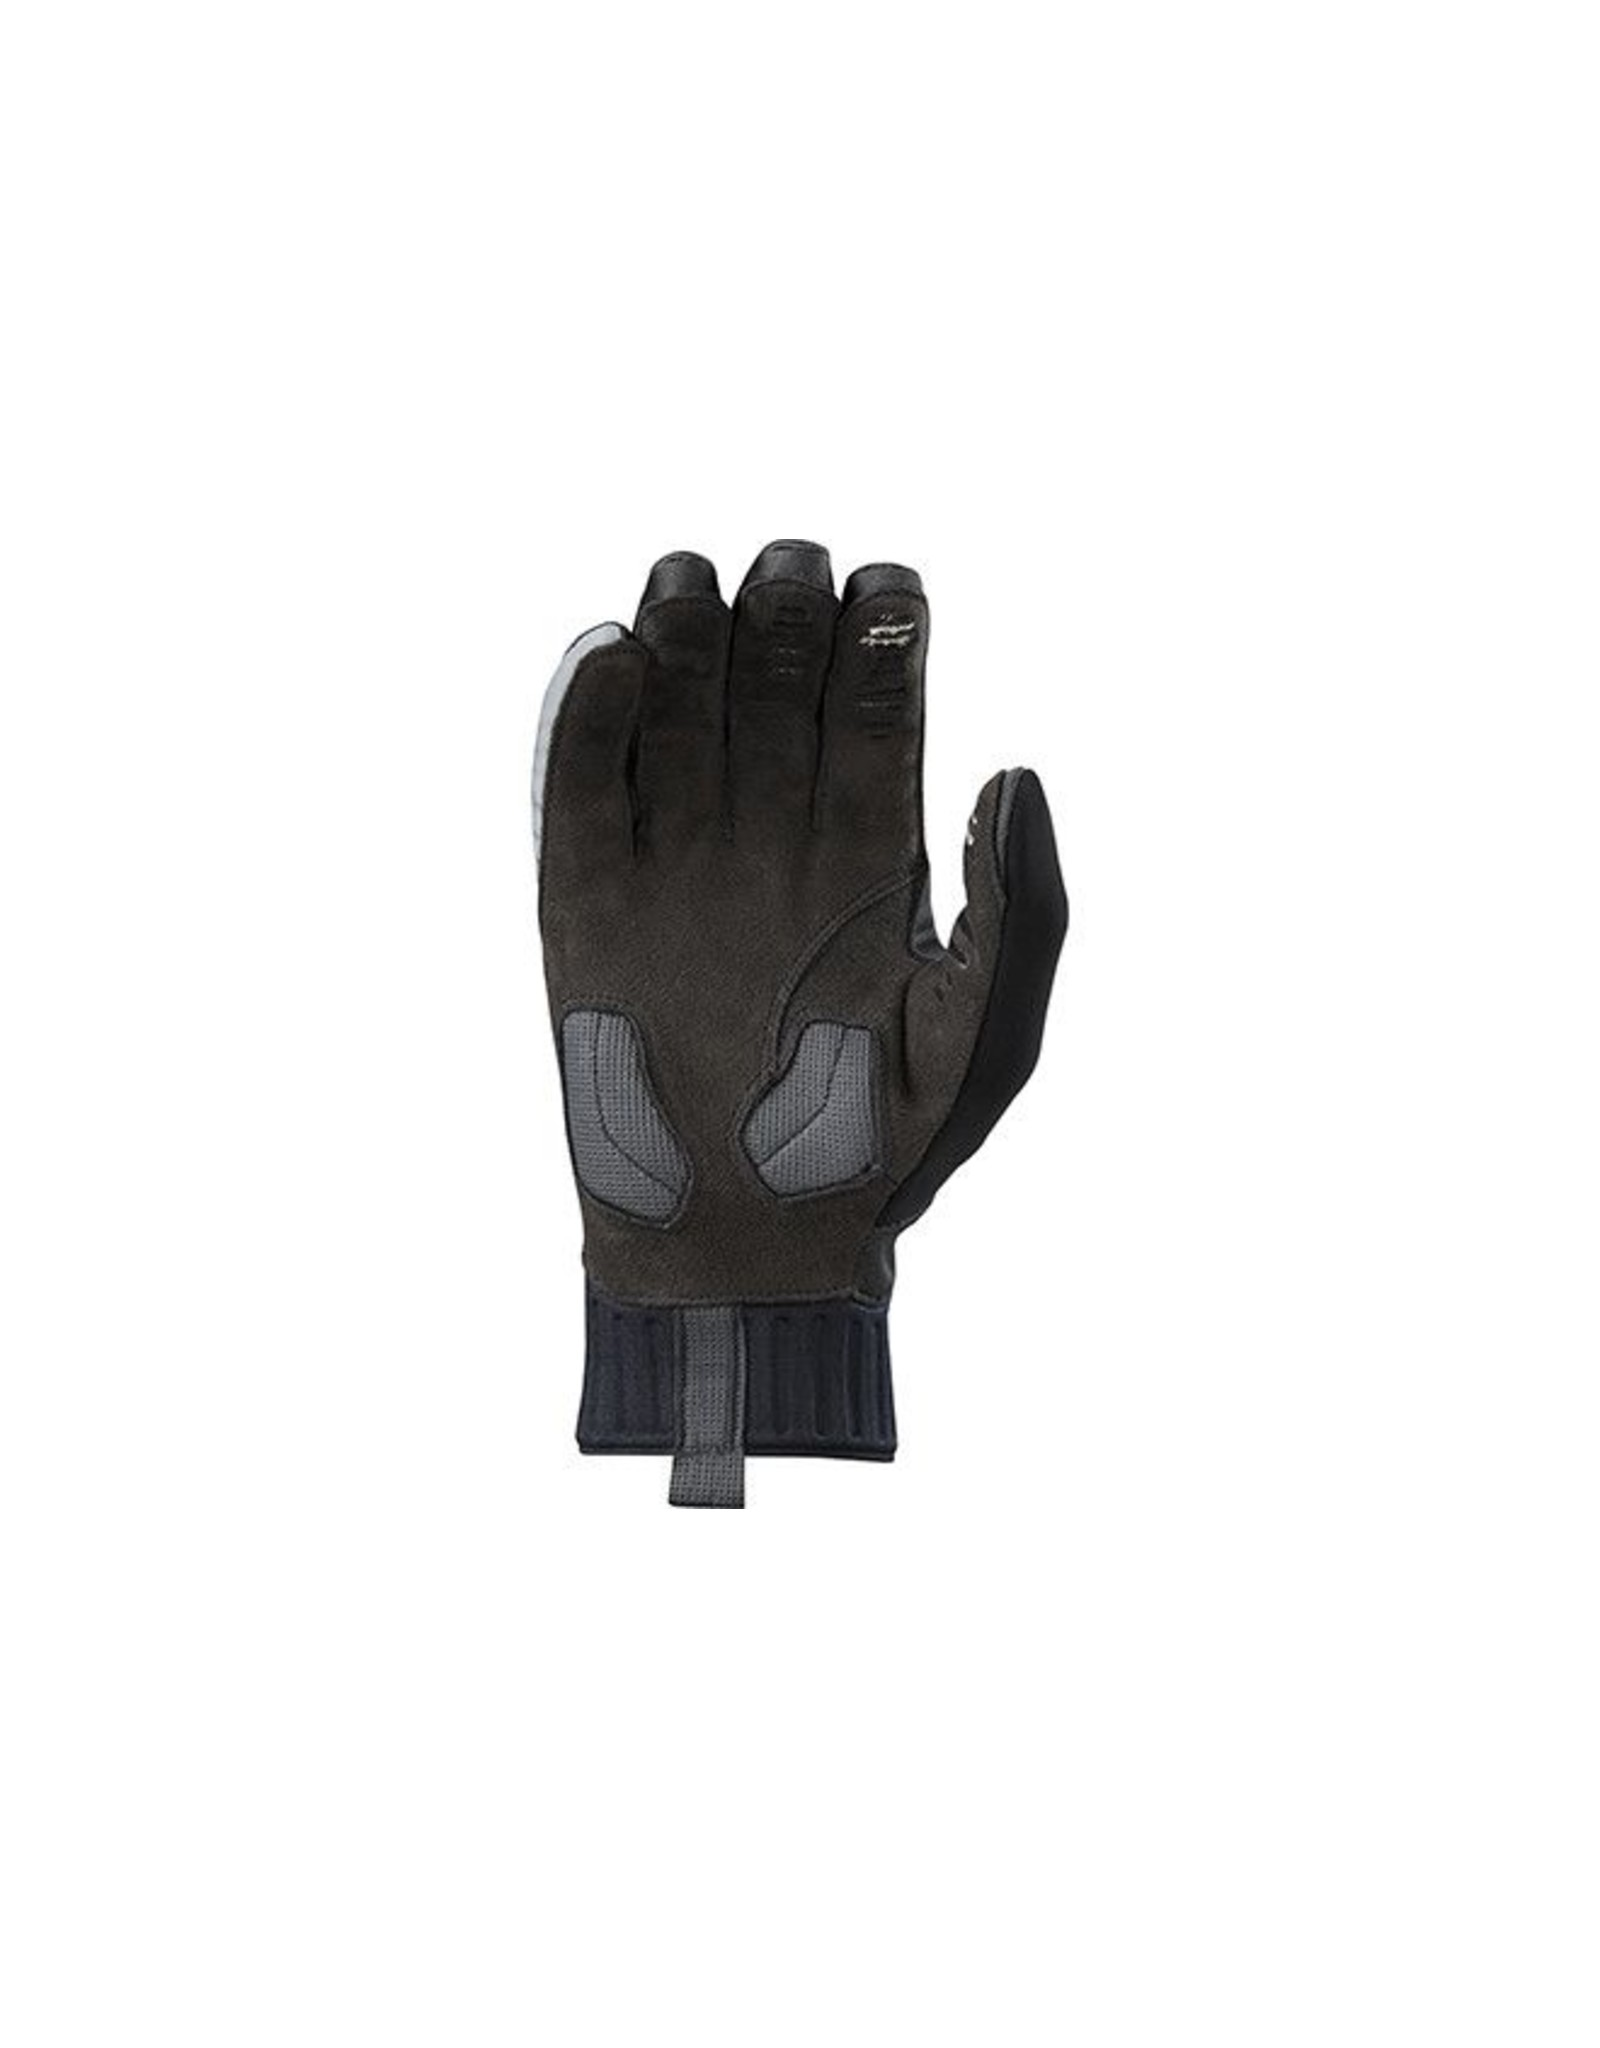 SPECIALIZED Specialized Deflect Glove - Black - X-Large